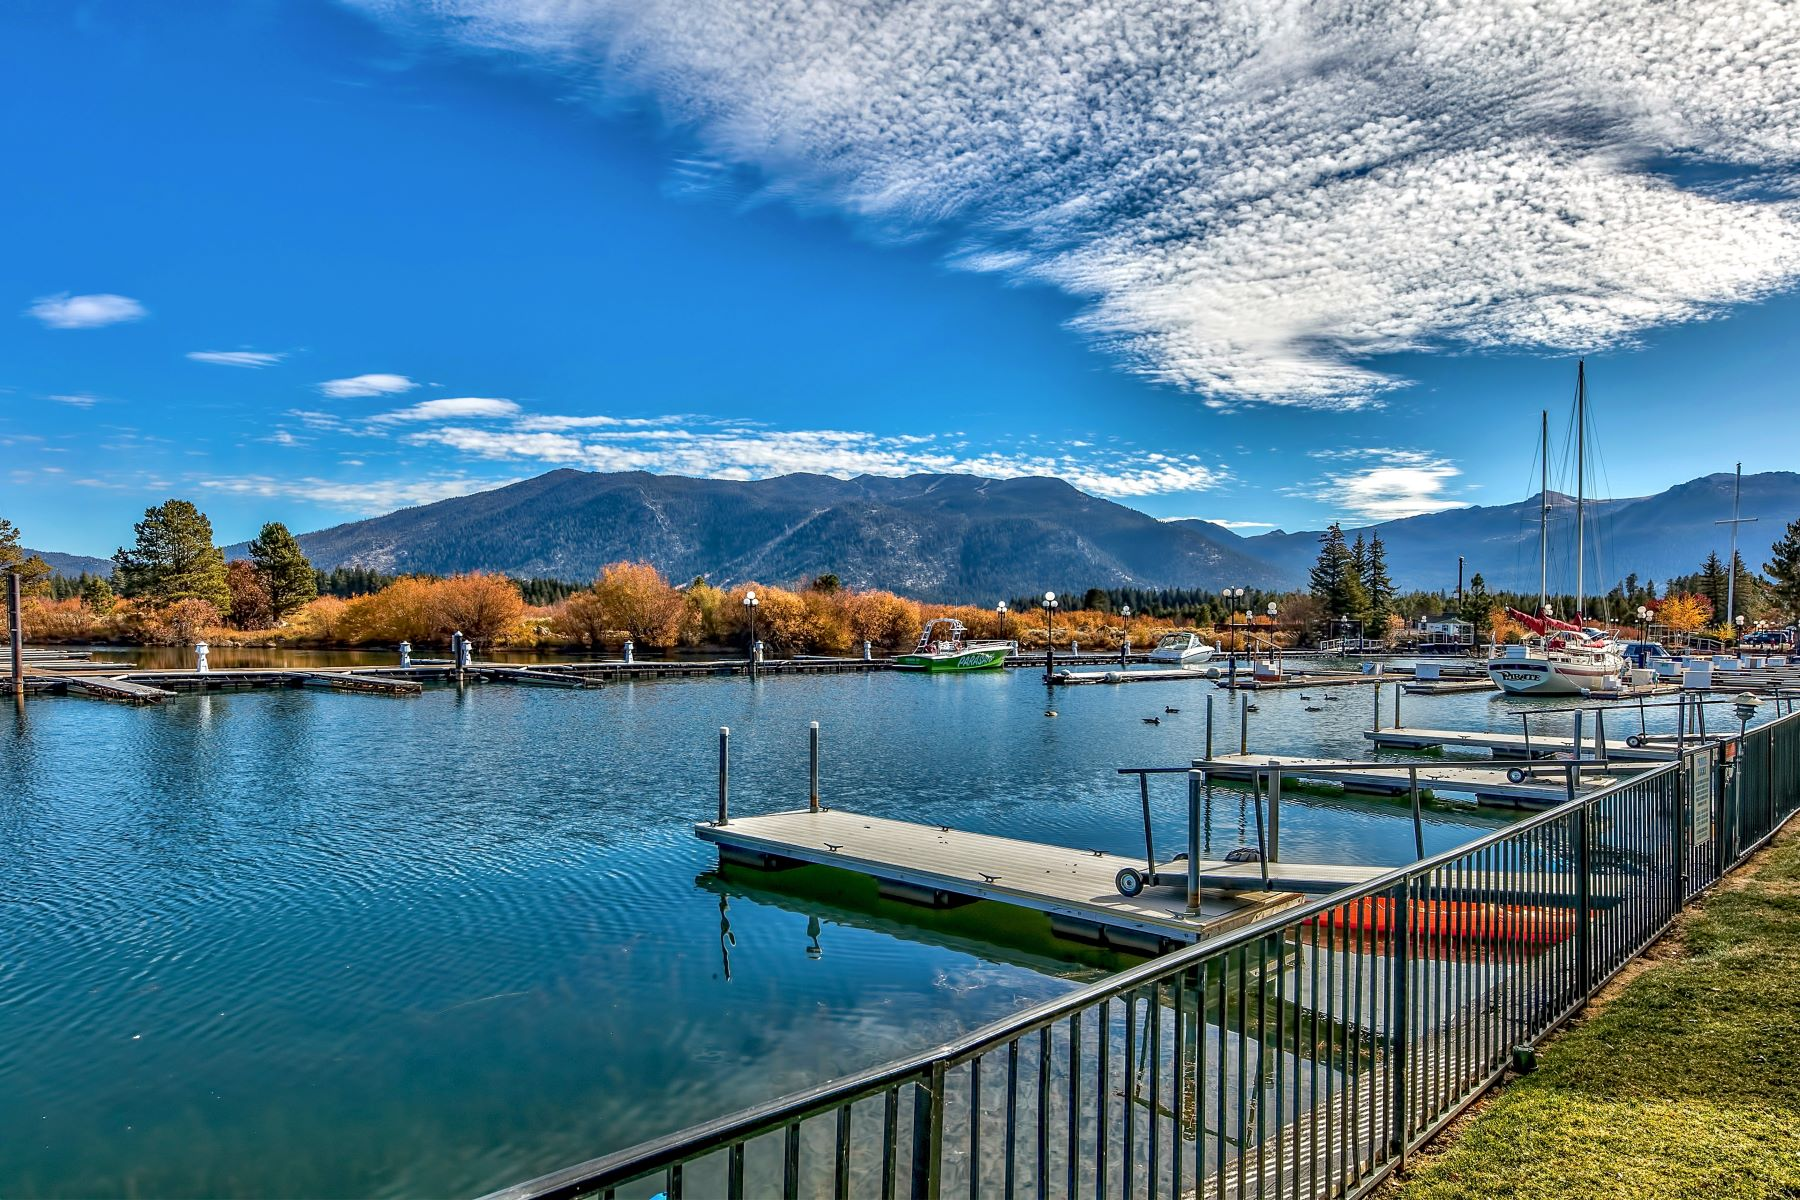 Additional photo for property listing at 439 Ala Wai Blvd #129,South Lake Tahoe, CA  96150 439 Ala Wai Blvd. #129 South Lake Tahoe, California 96150 United States